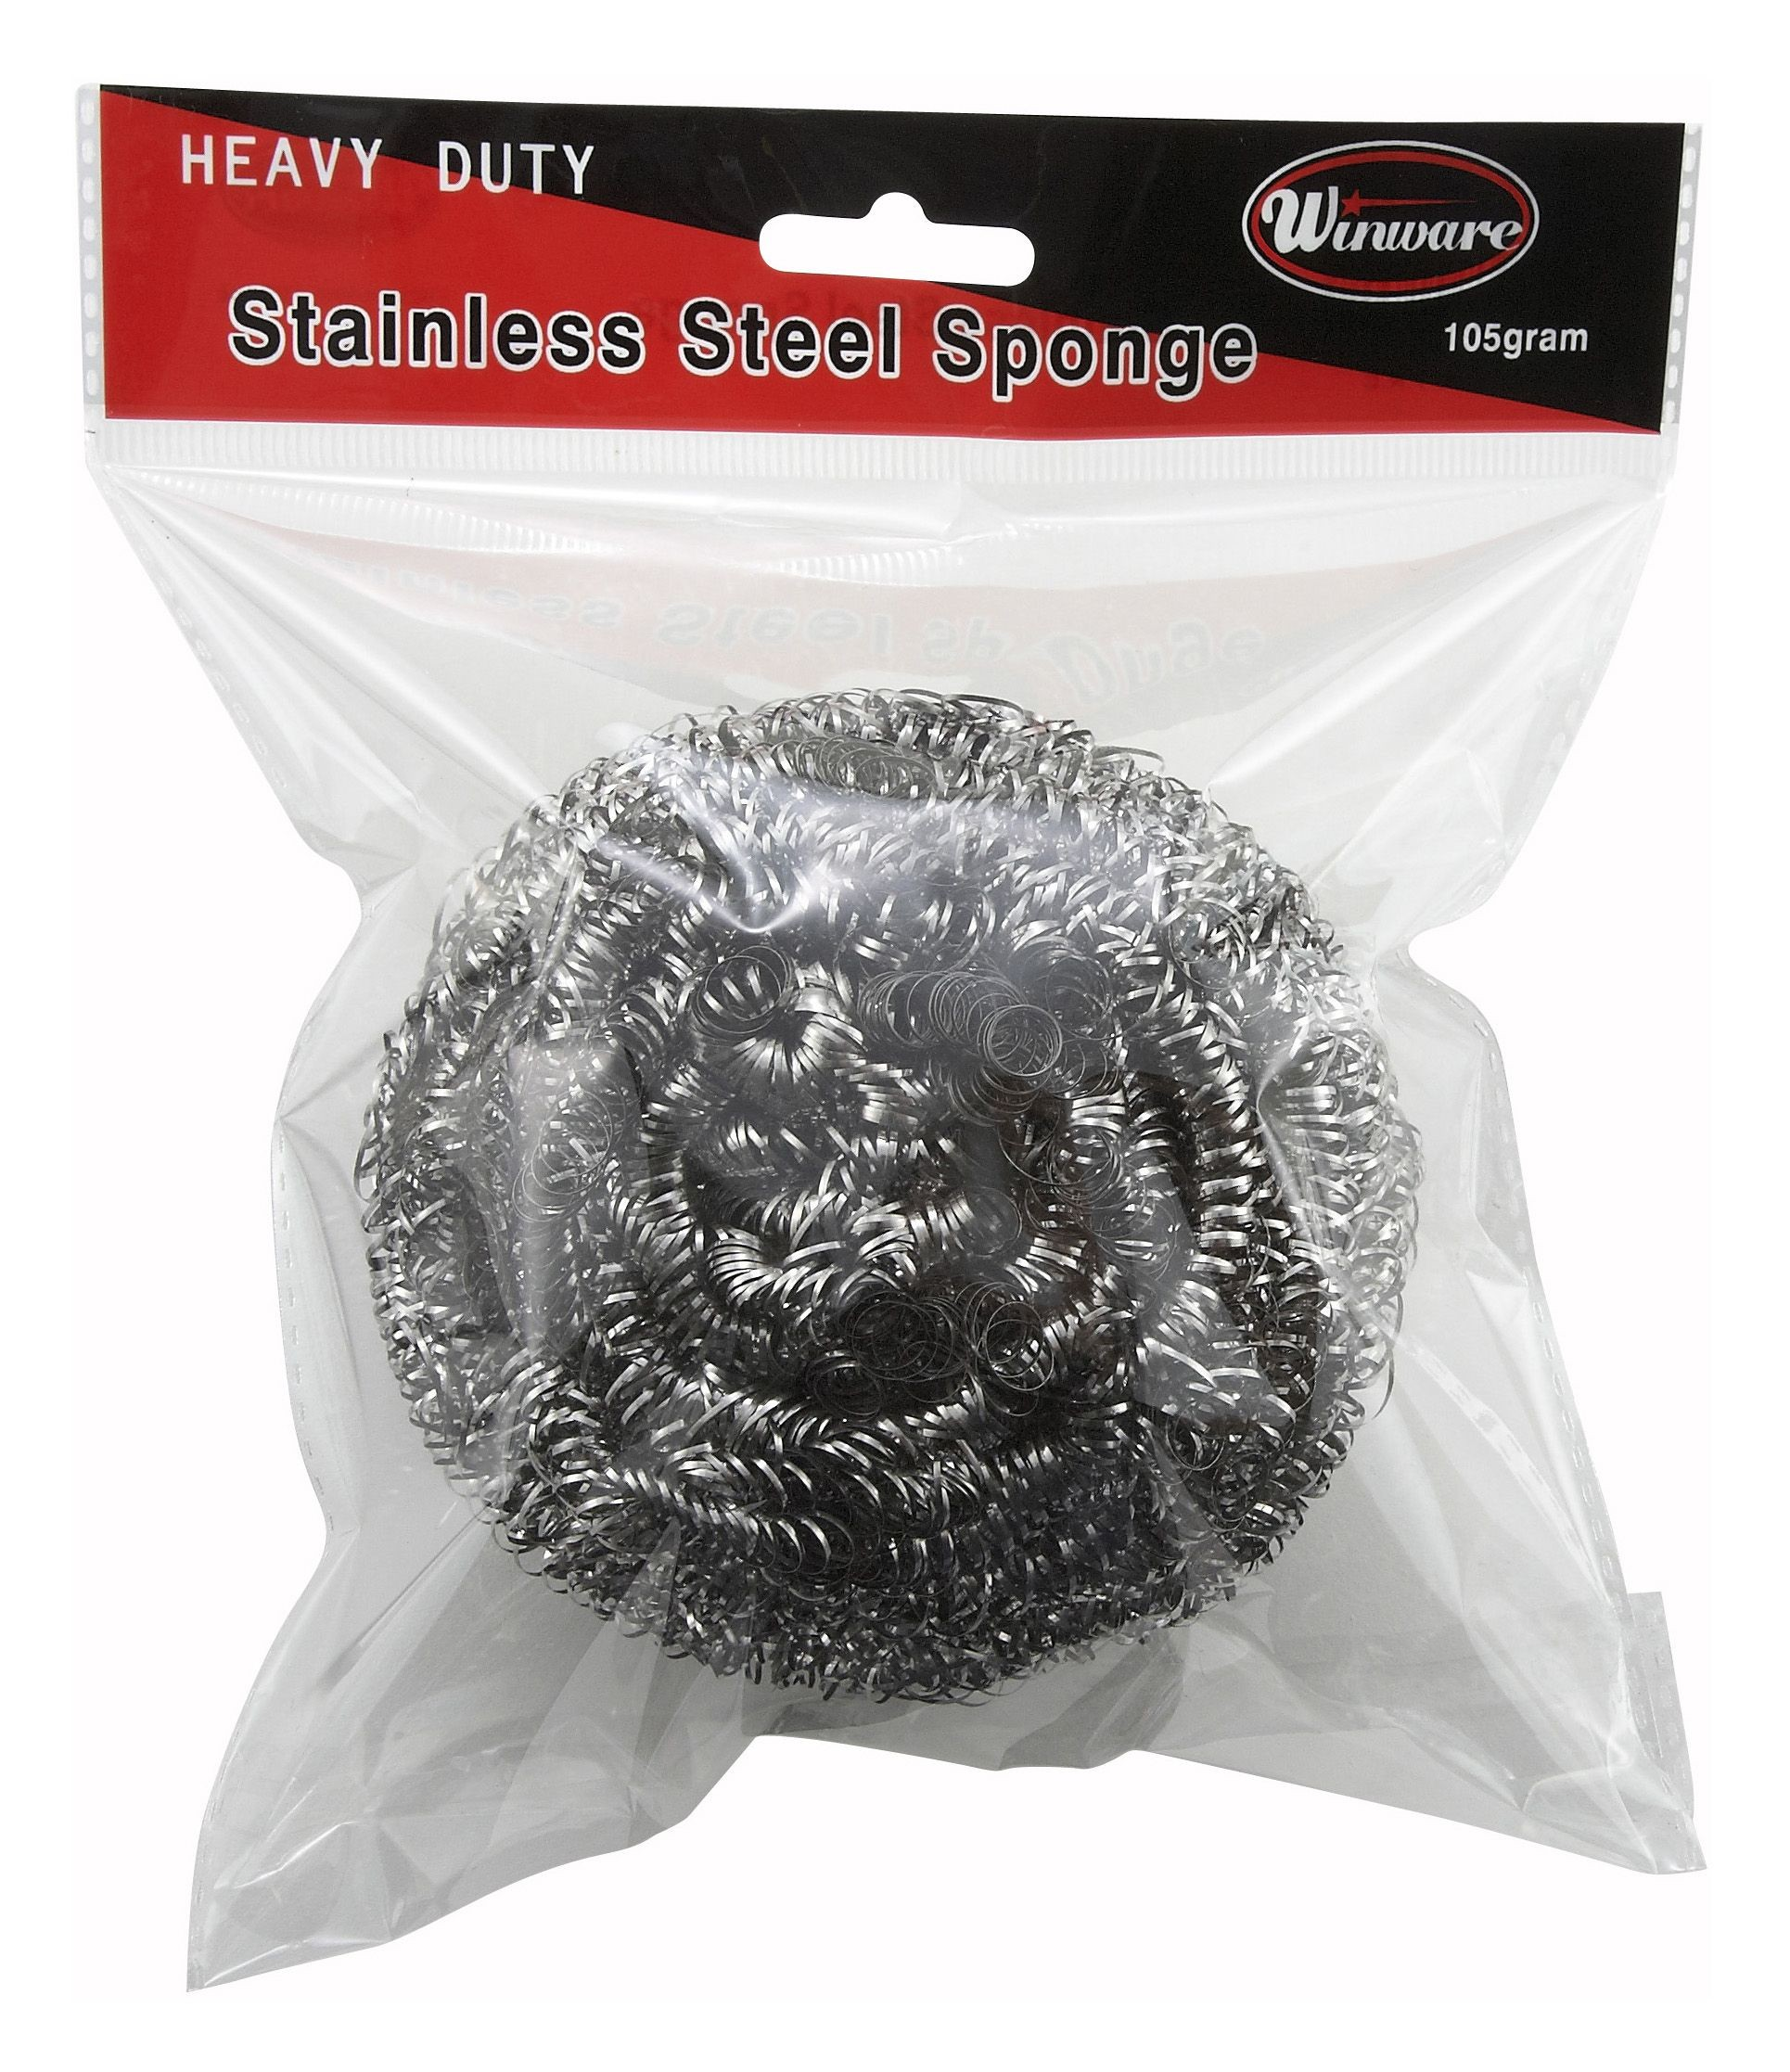 Extra Large Stainless Steel Sponges 105G